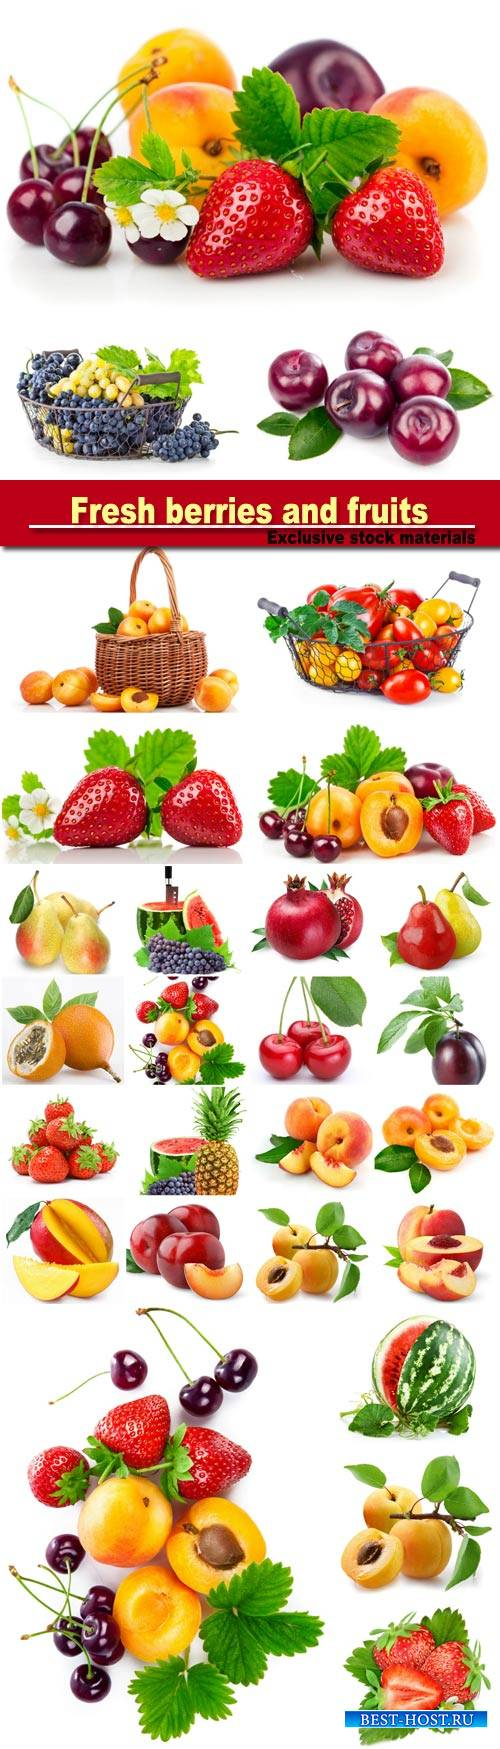 Fresh berries and fruits in still life with green leaves strawberry, apricot, cherry, plum isolated on white background